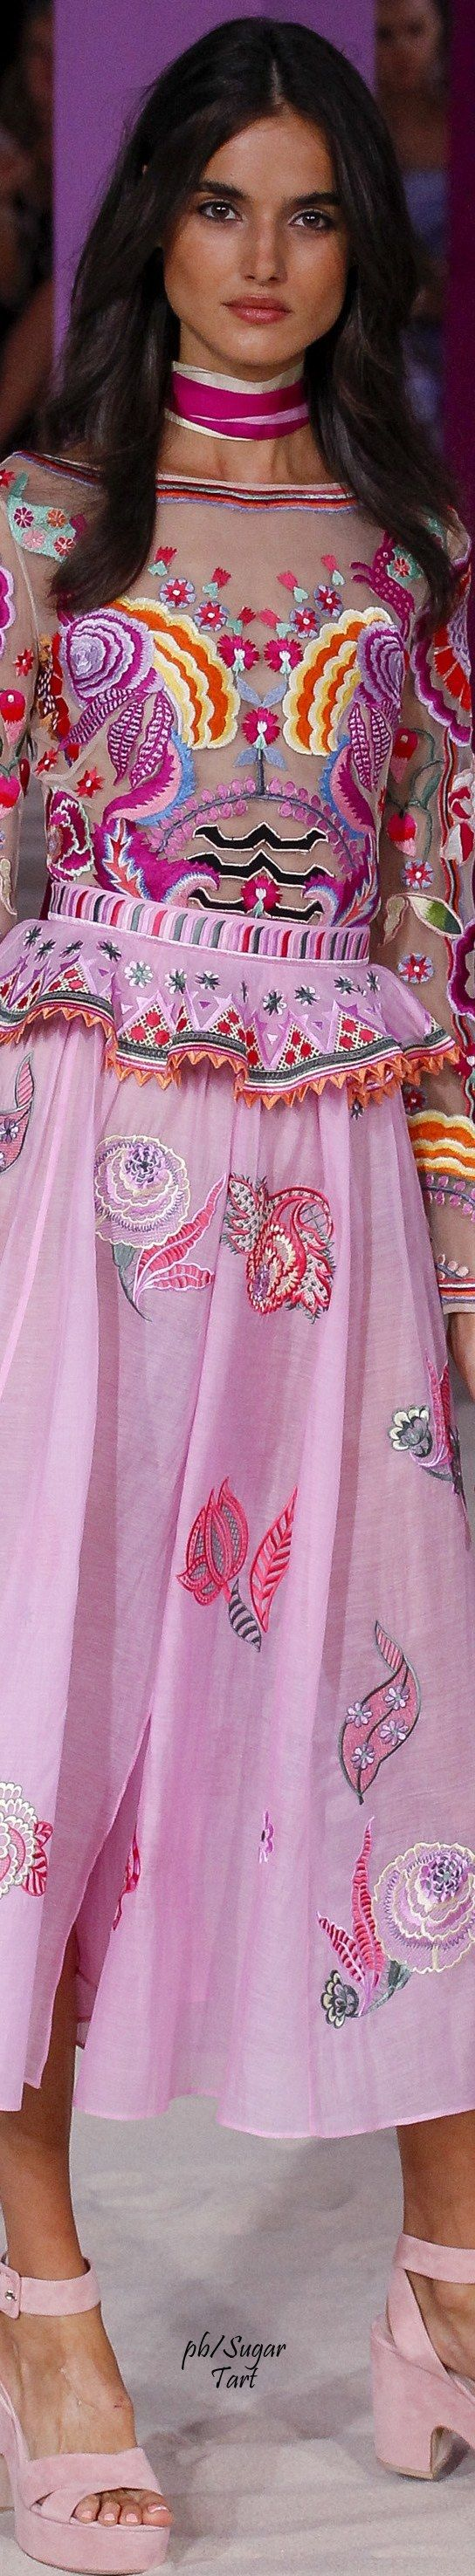 Temperley London Spring 2017